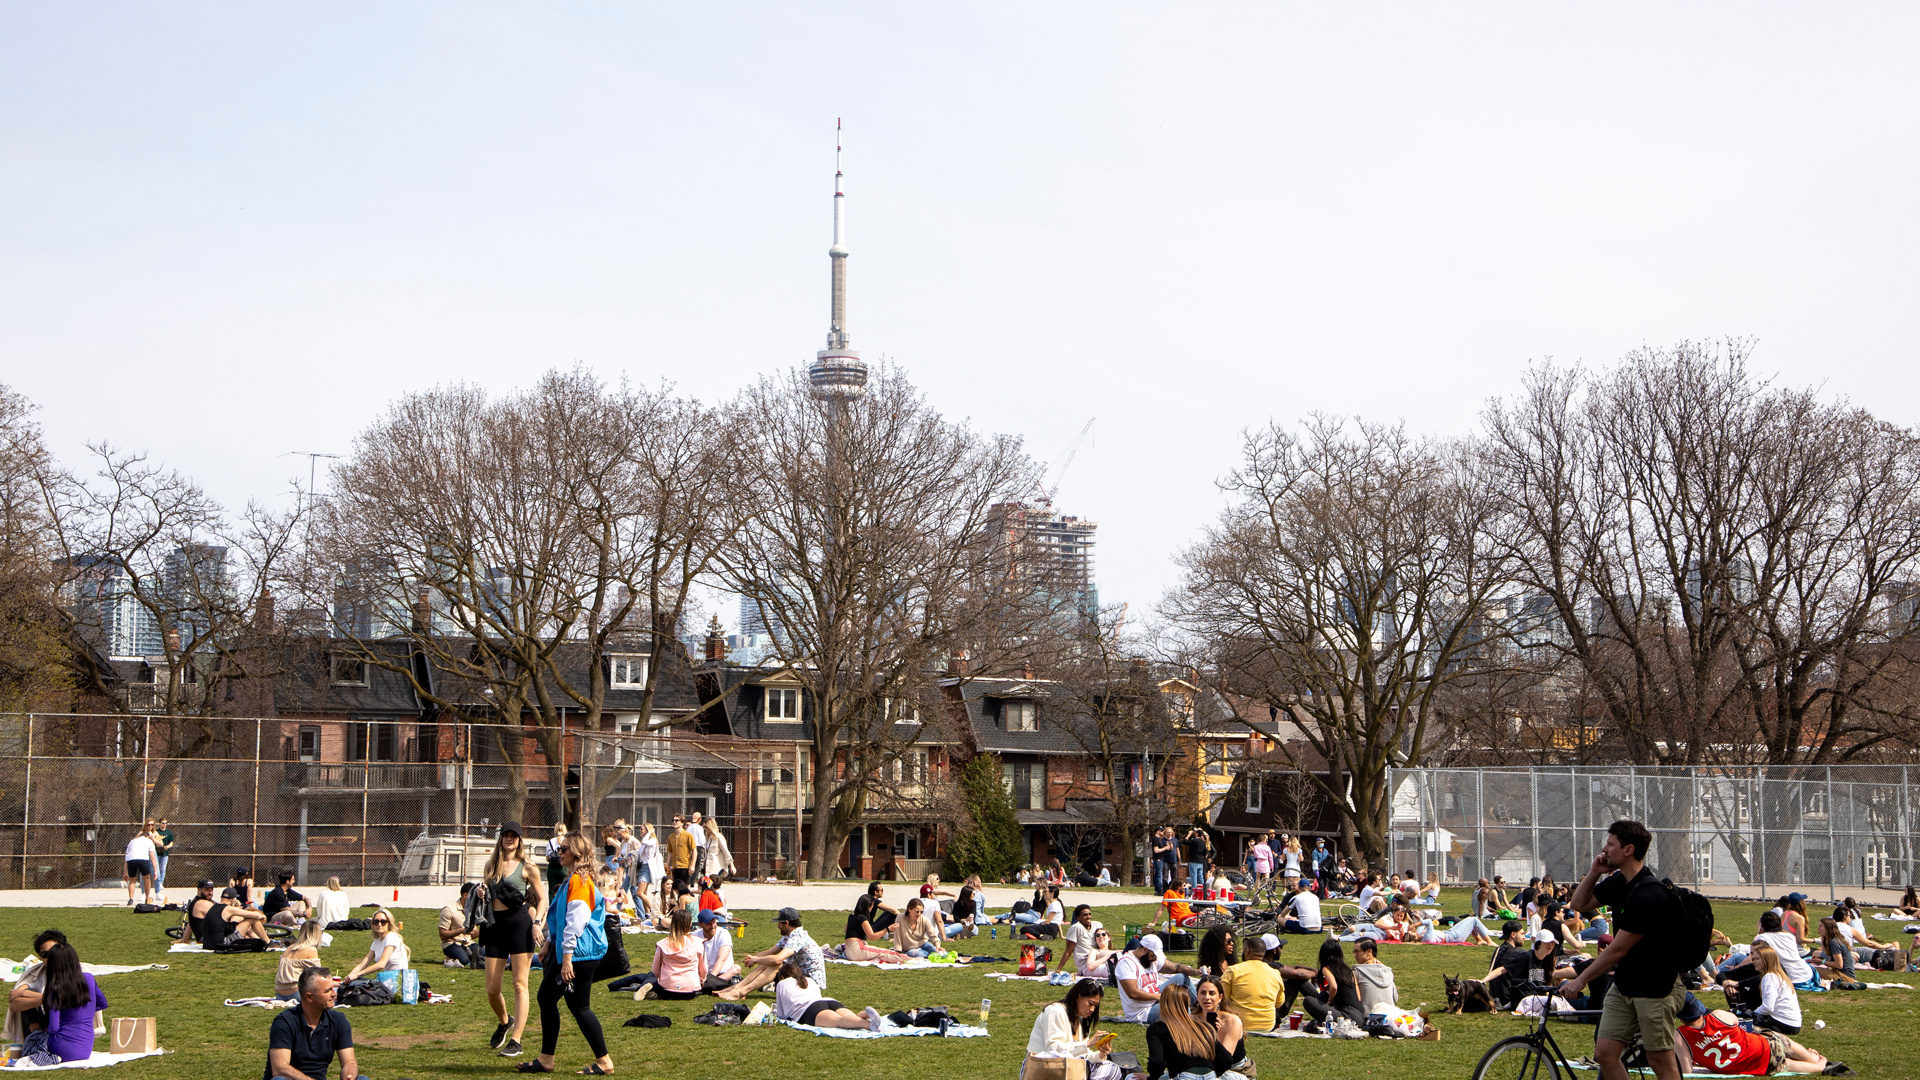 Things to do in Toronto this April 2021 | People sitting in Trinity Bellwoods Park